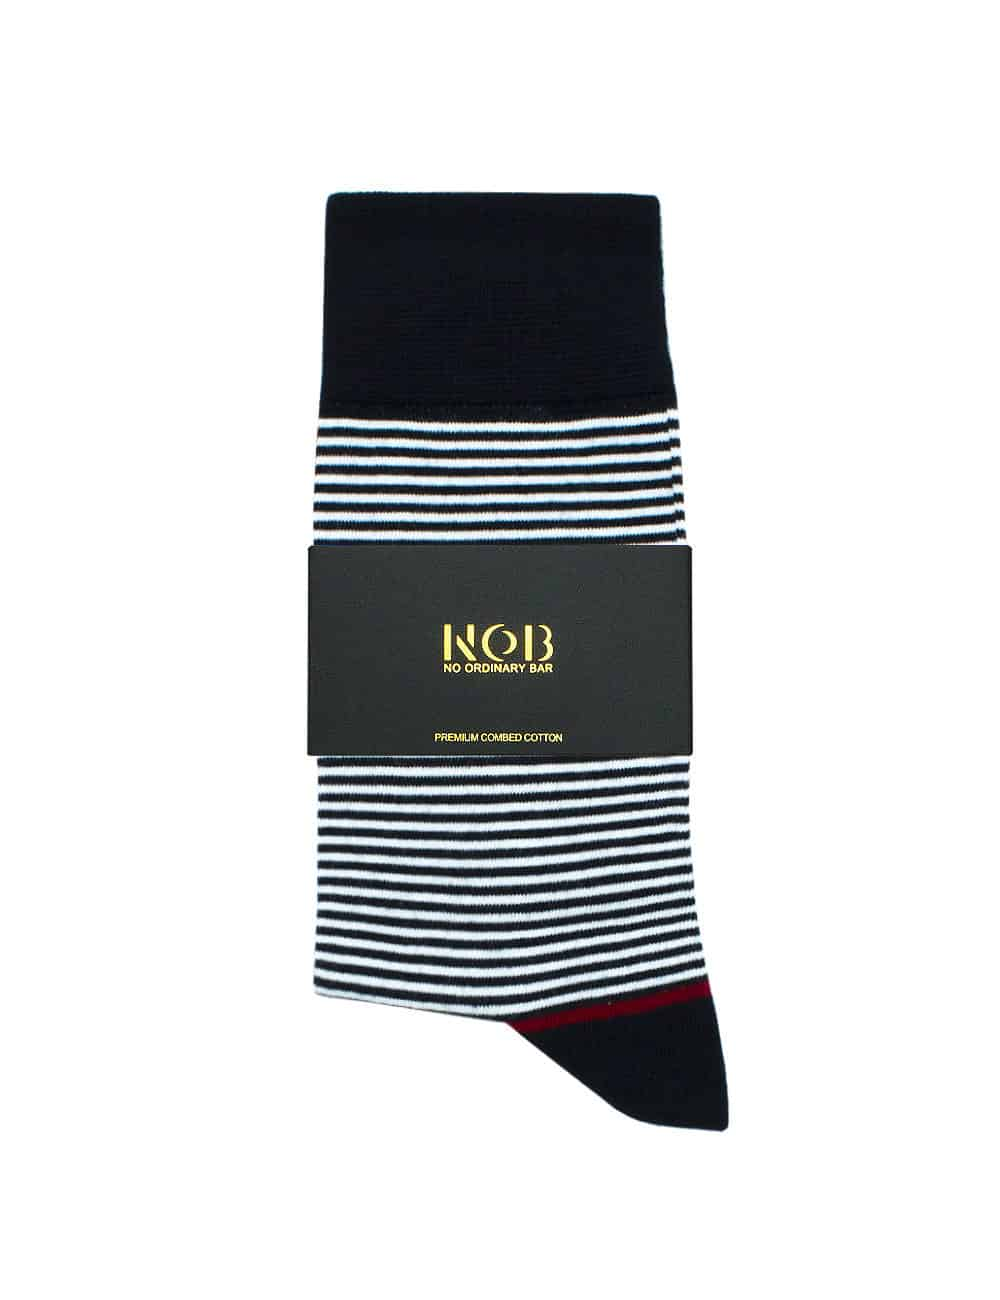 NAVY AND WHITE STRIPES CREW SOCKS SOC3B.NOB1